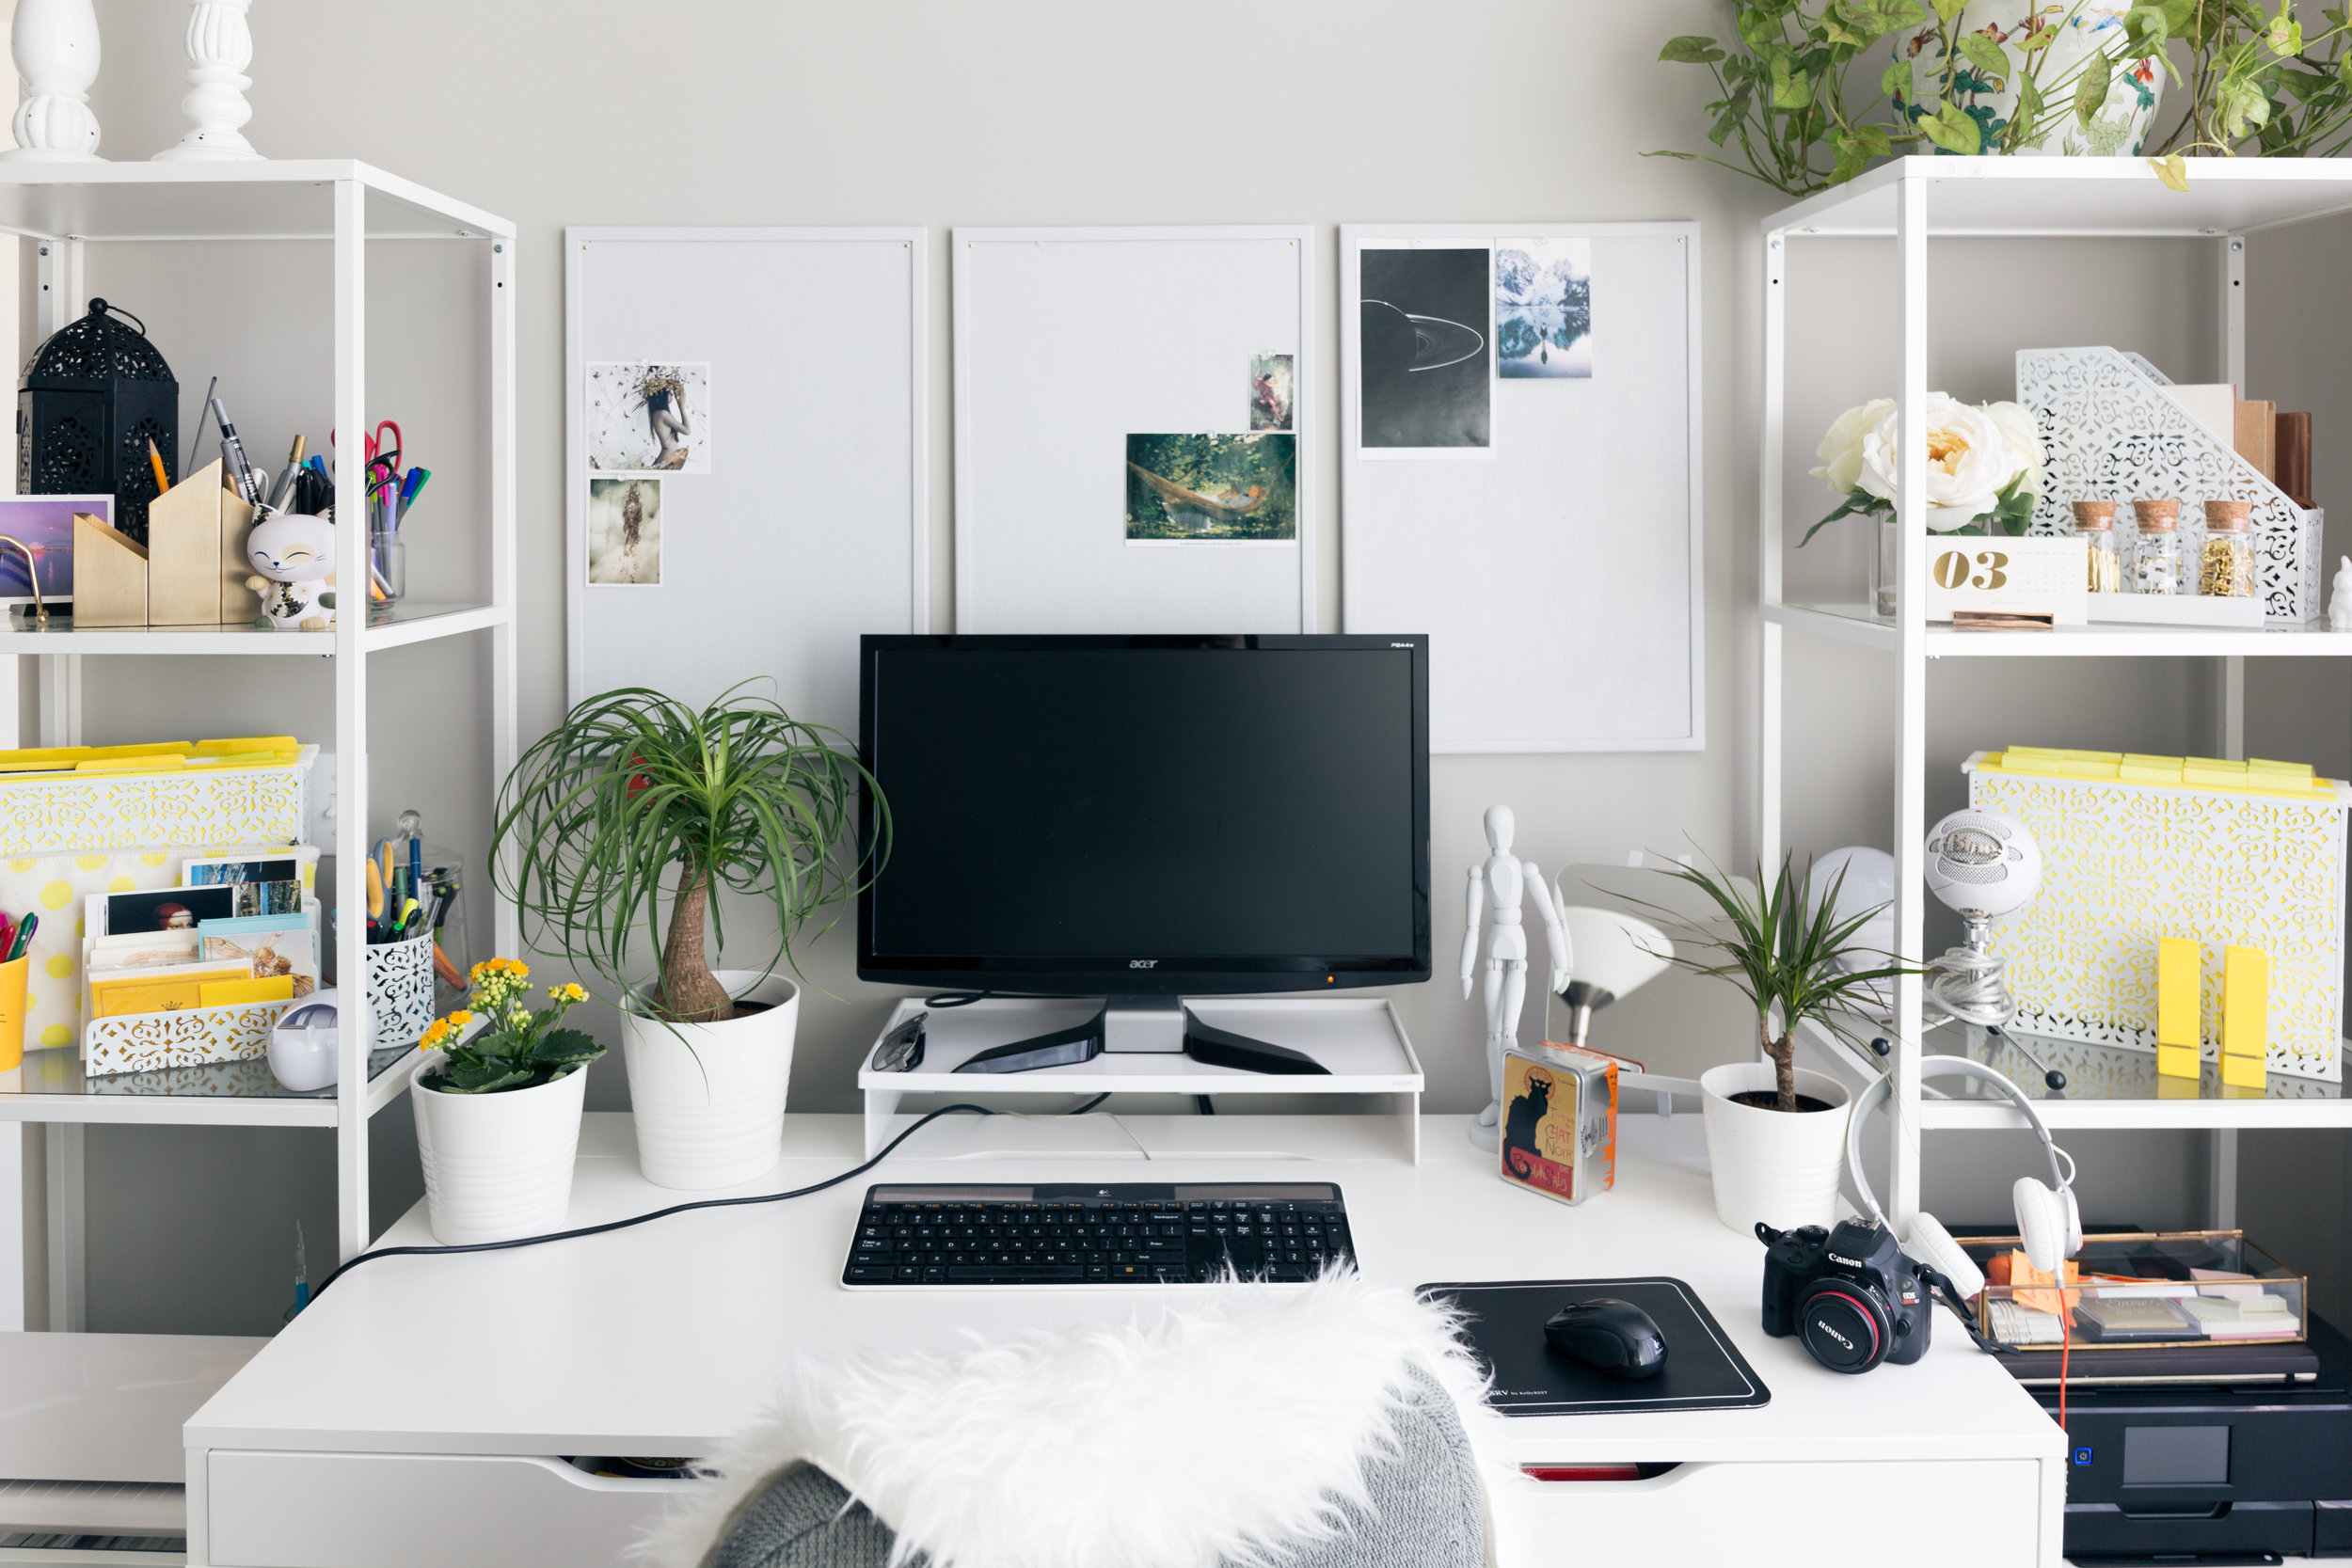 Invest in office organizers, such as, shelving, file cabinets, and desk organizers to make it your best work day ever!